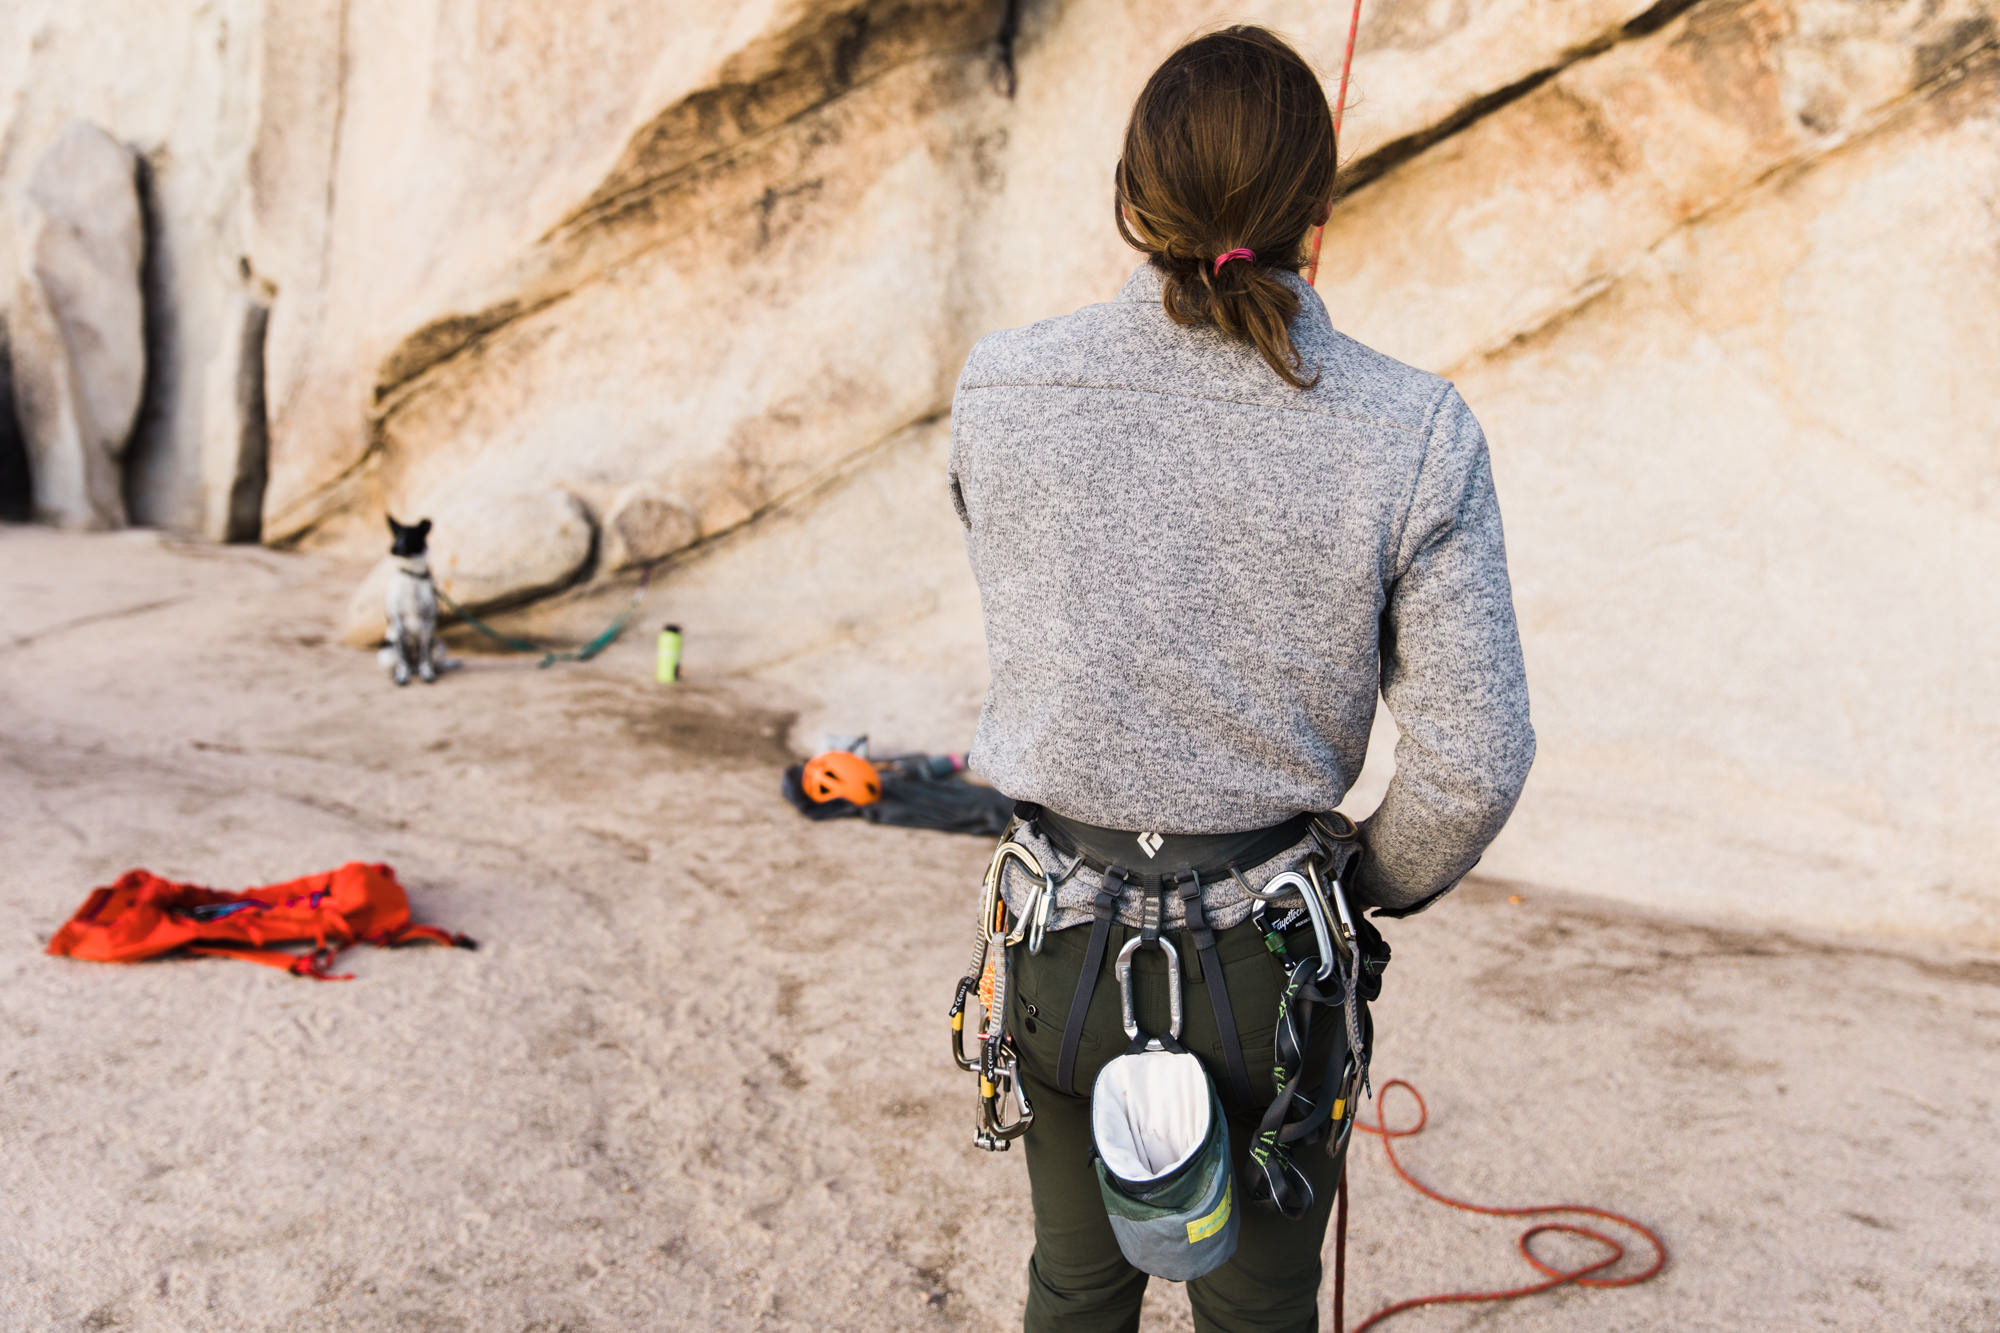 rock climbing in joshua tree national park // www.abbihearne.com